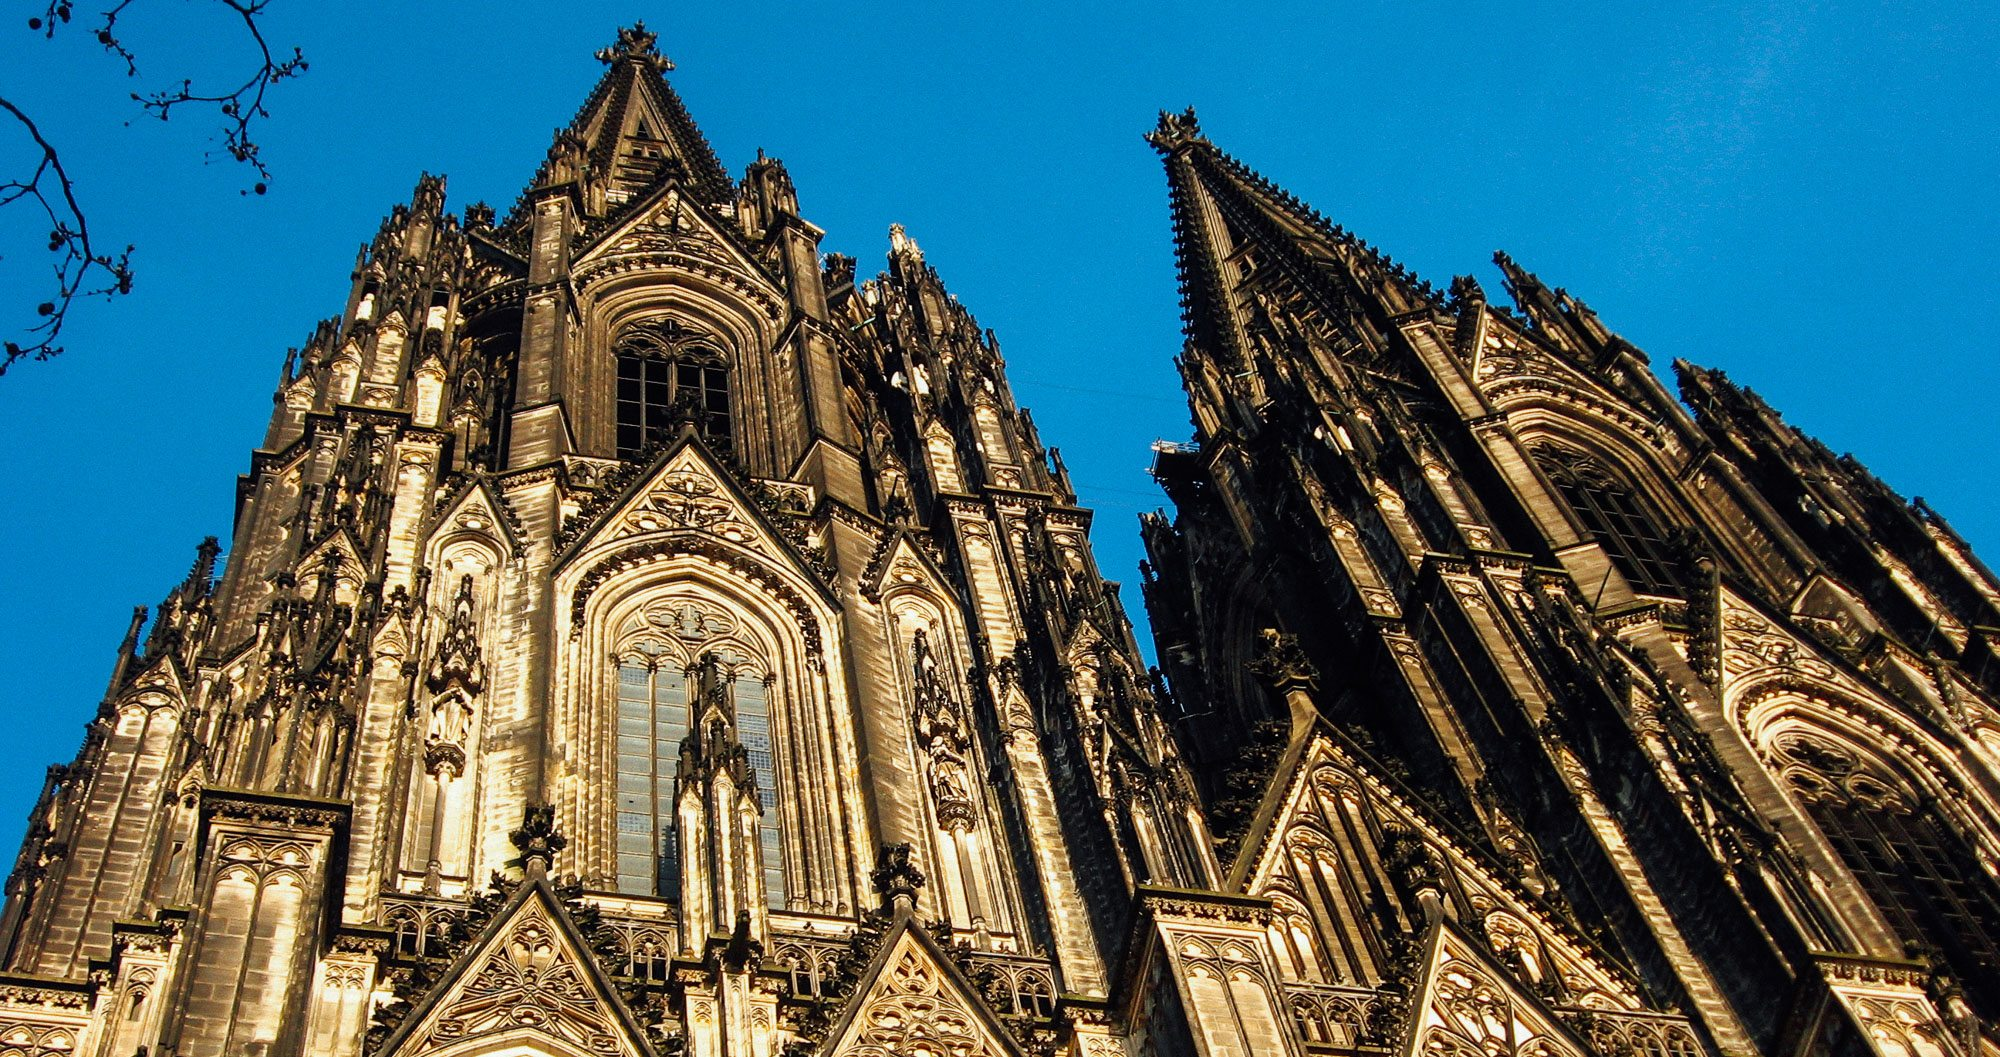 Cologne's magnificent cathedral is a must-see for those on a sports tour to Germany